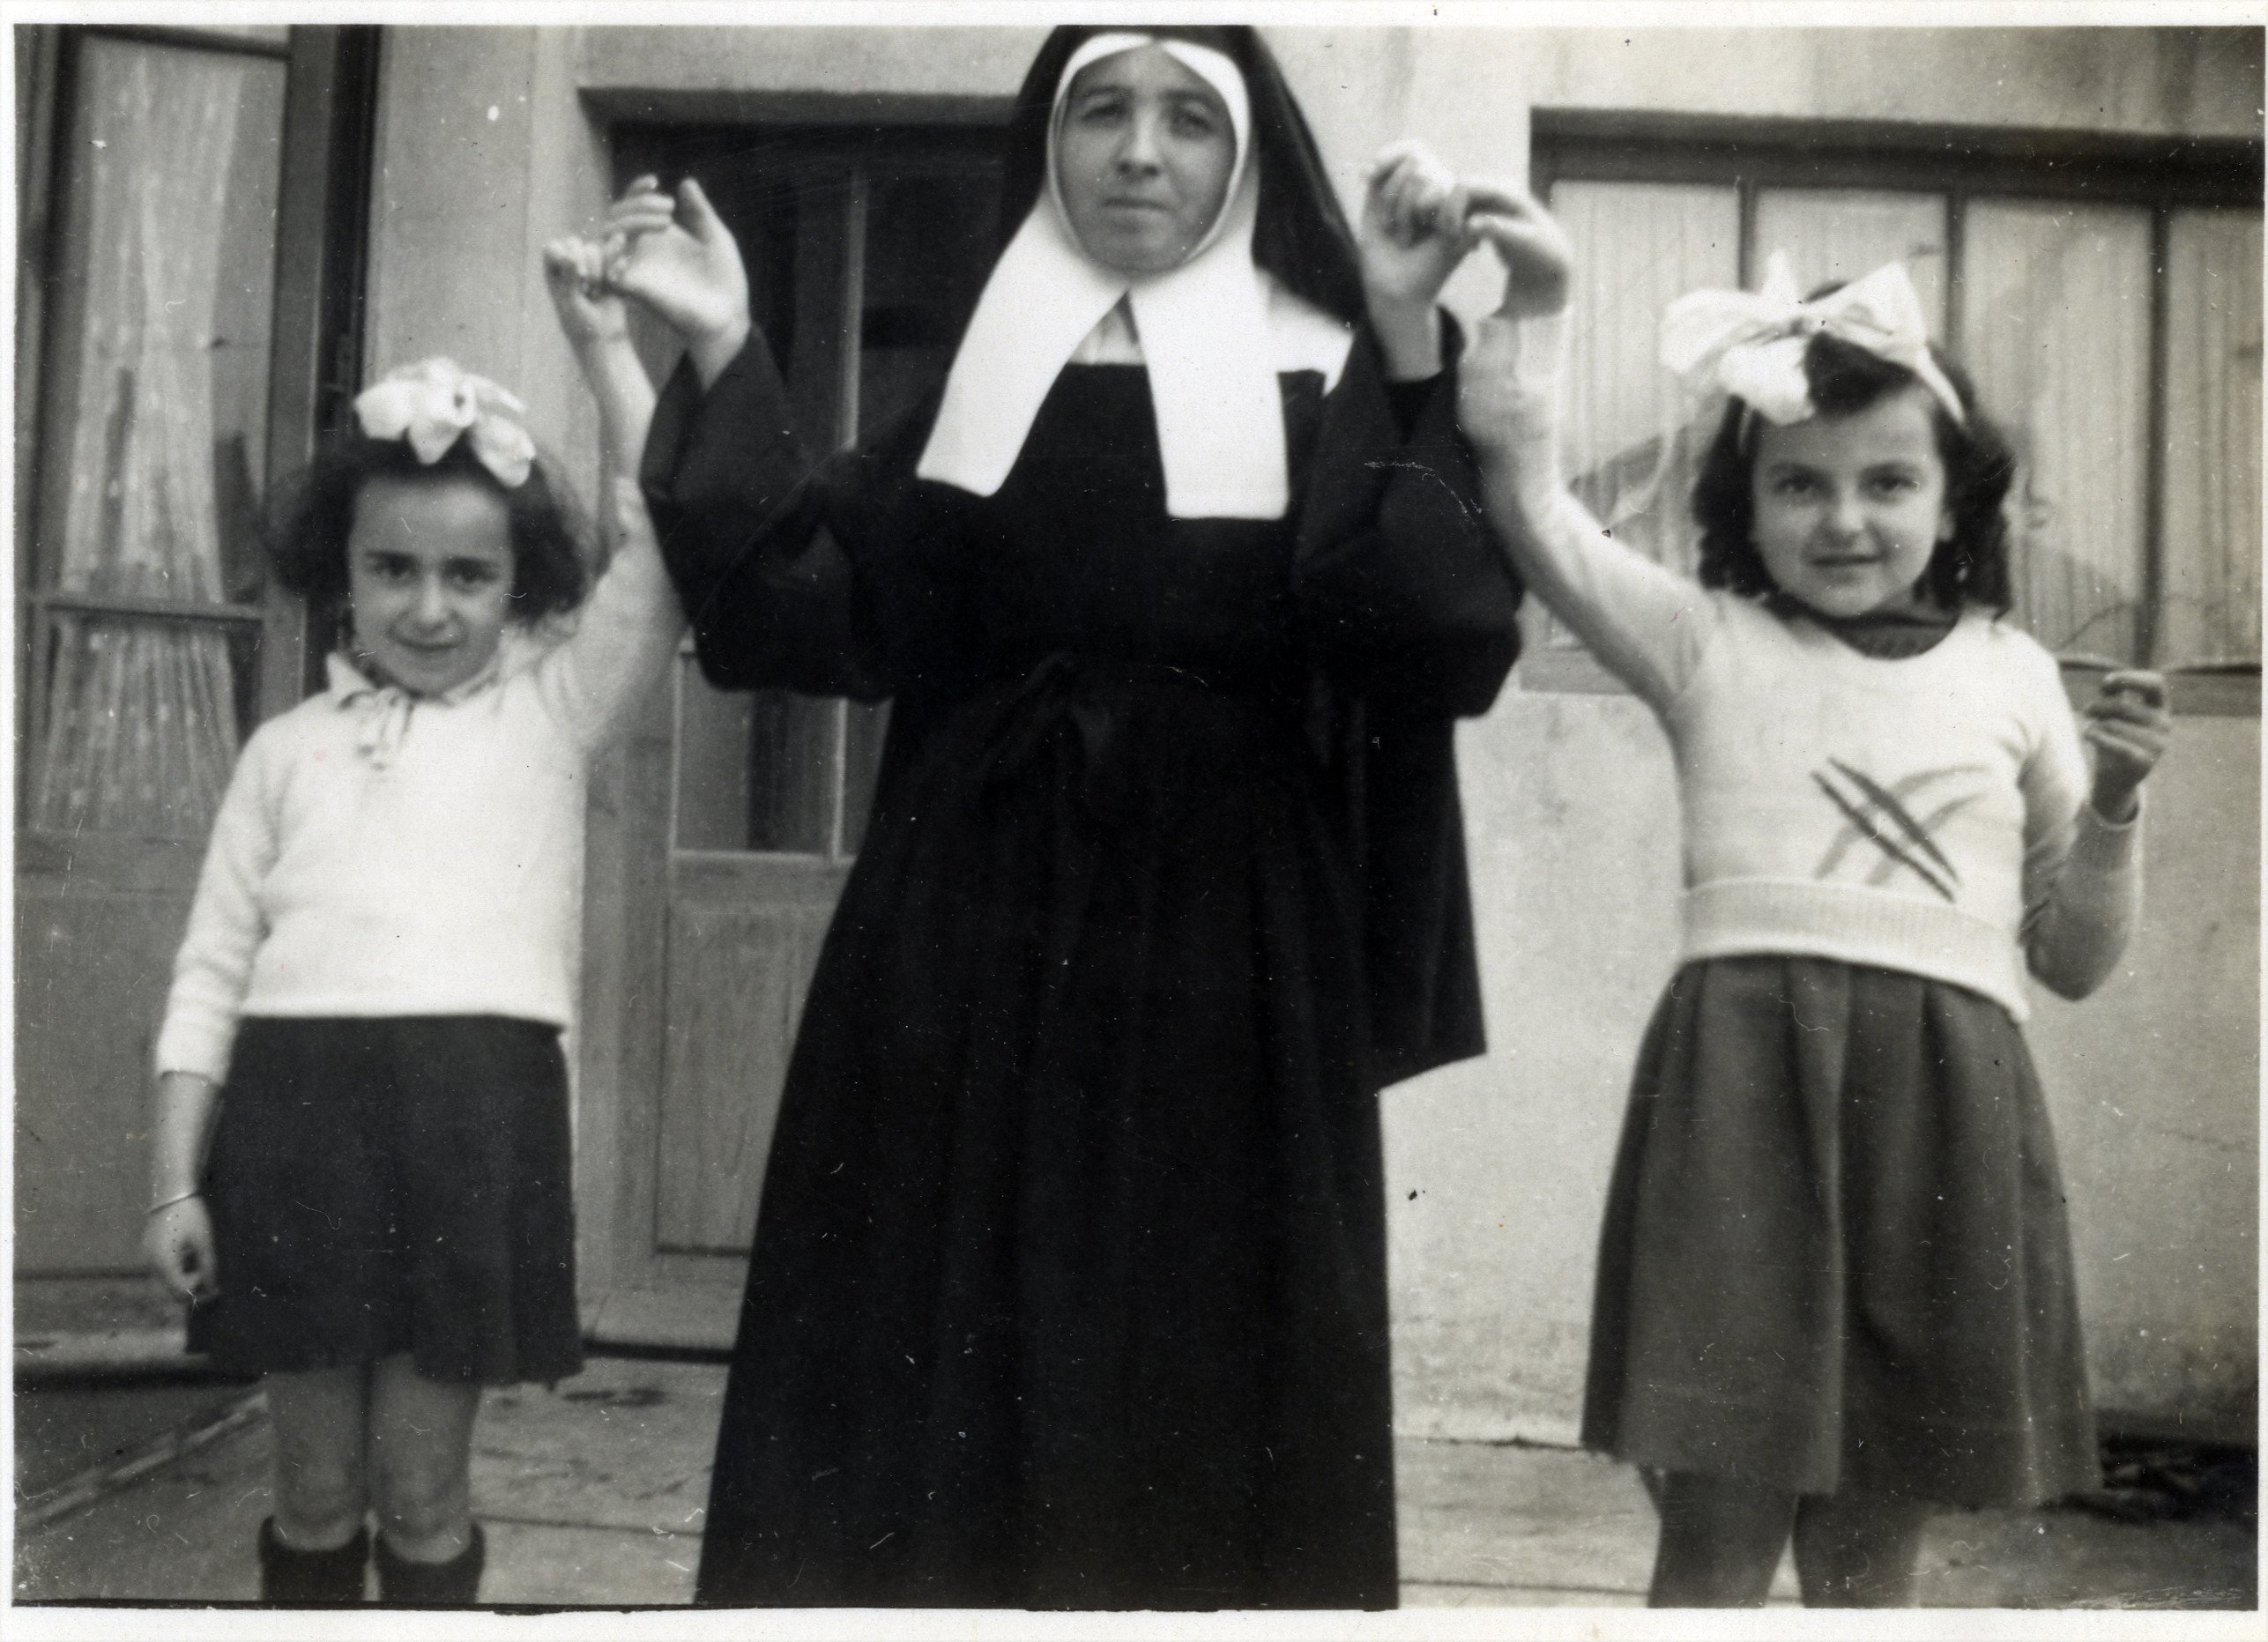 Claire Ridnik  with her cousin Aliette stand with a nun while in hiding.  Claire is on the right, and Aliette is on the left.